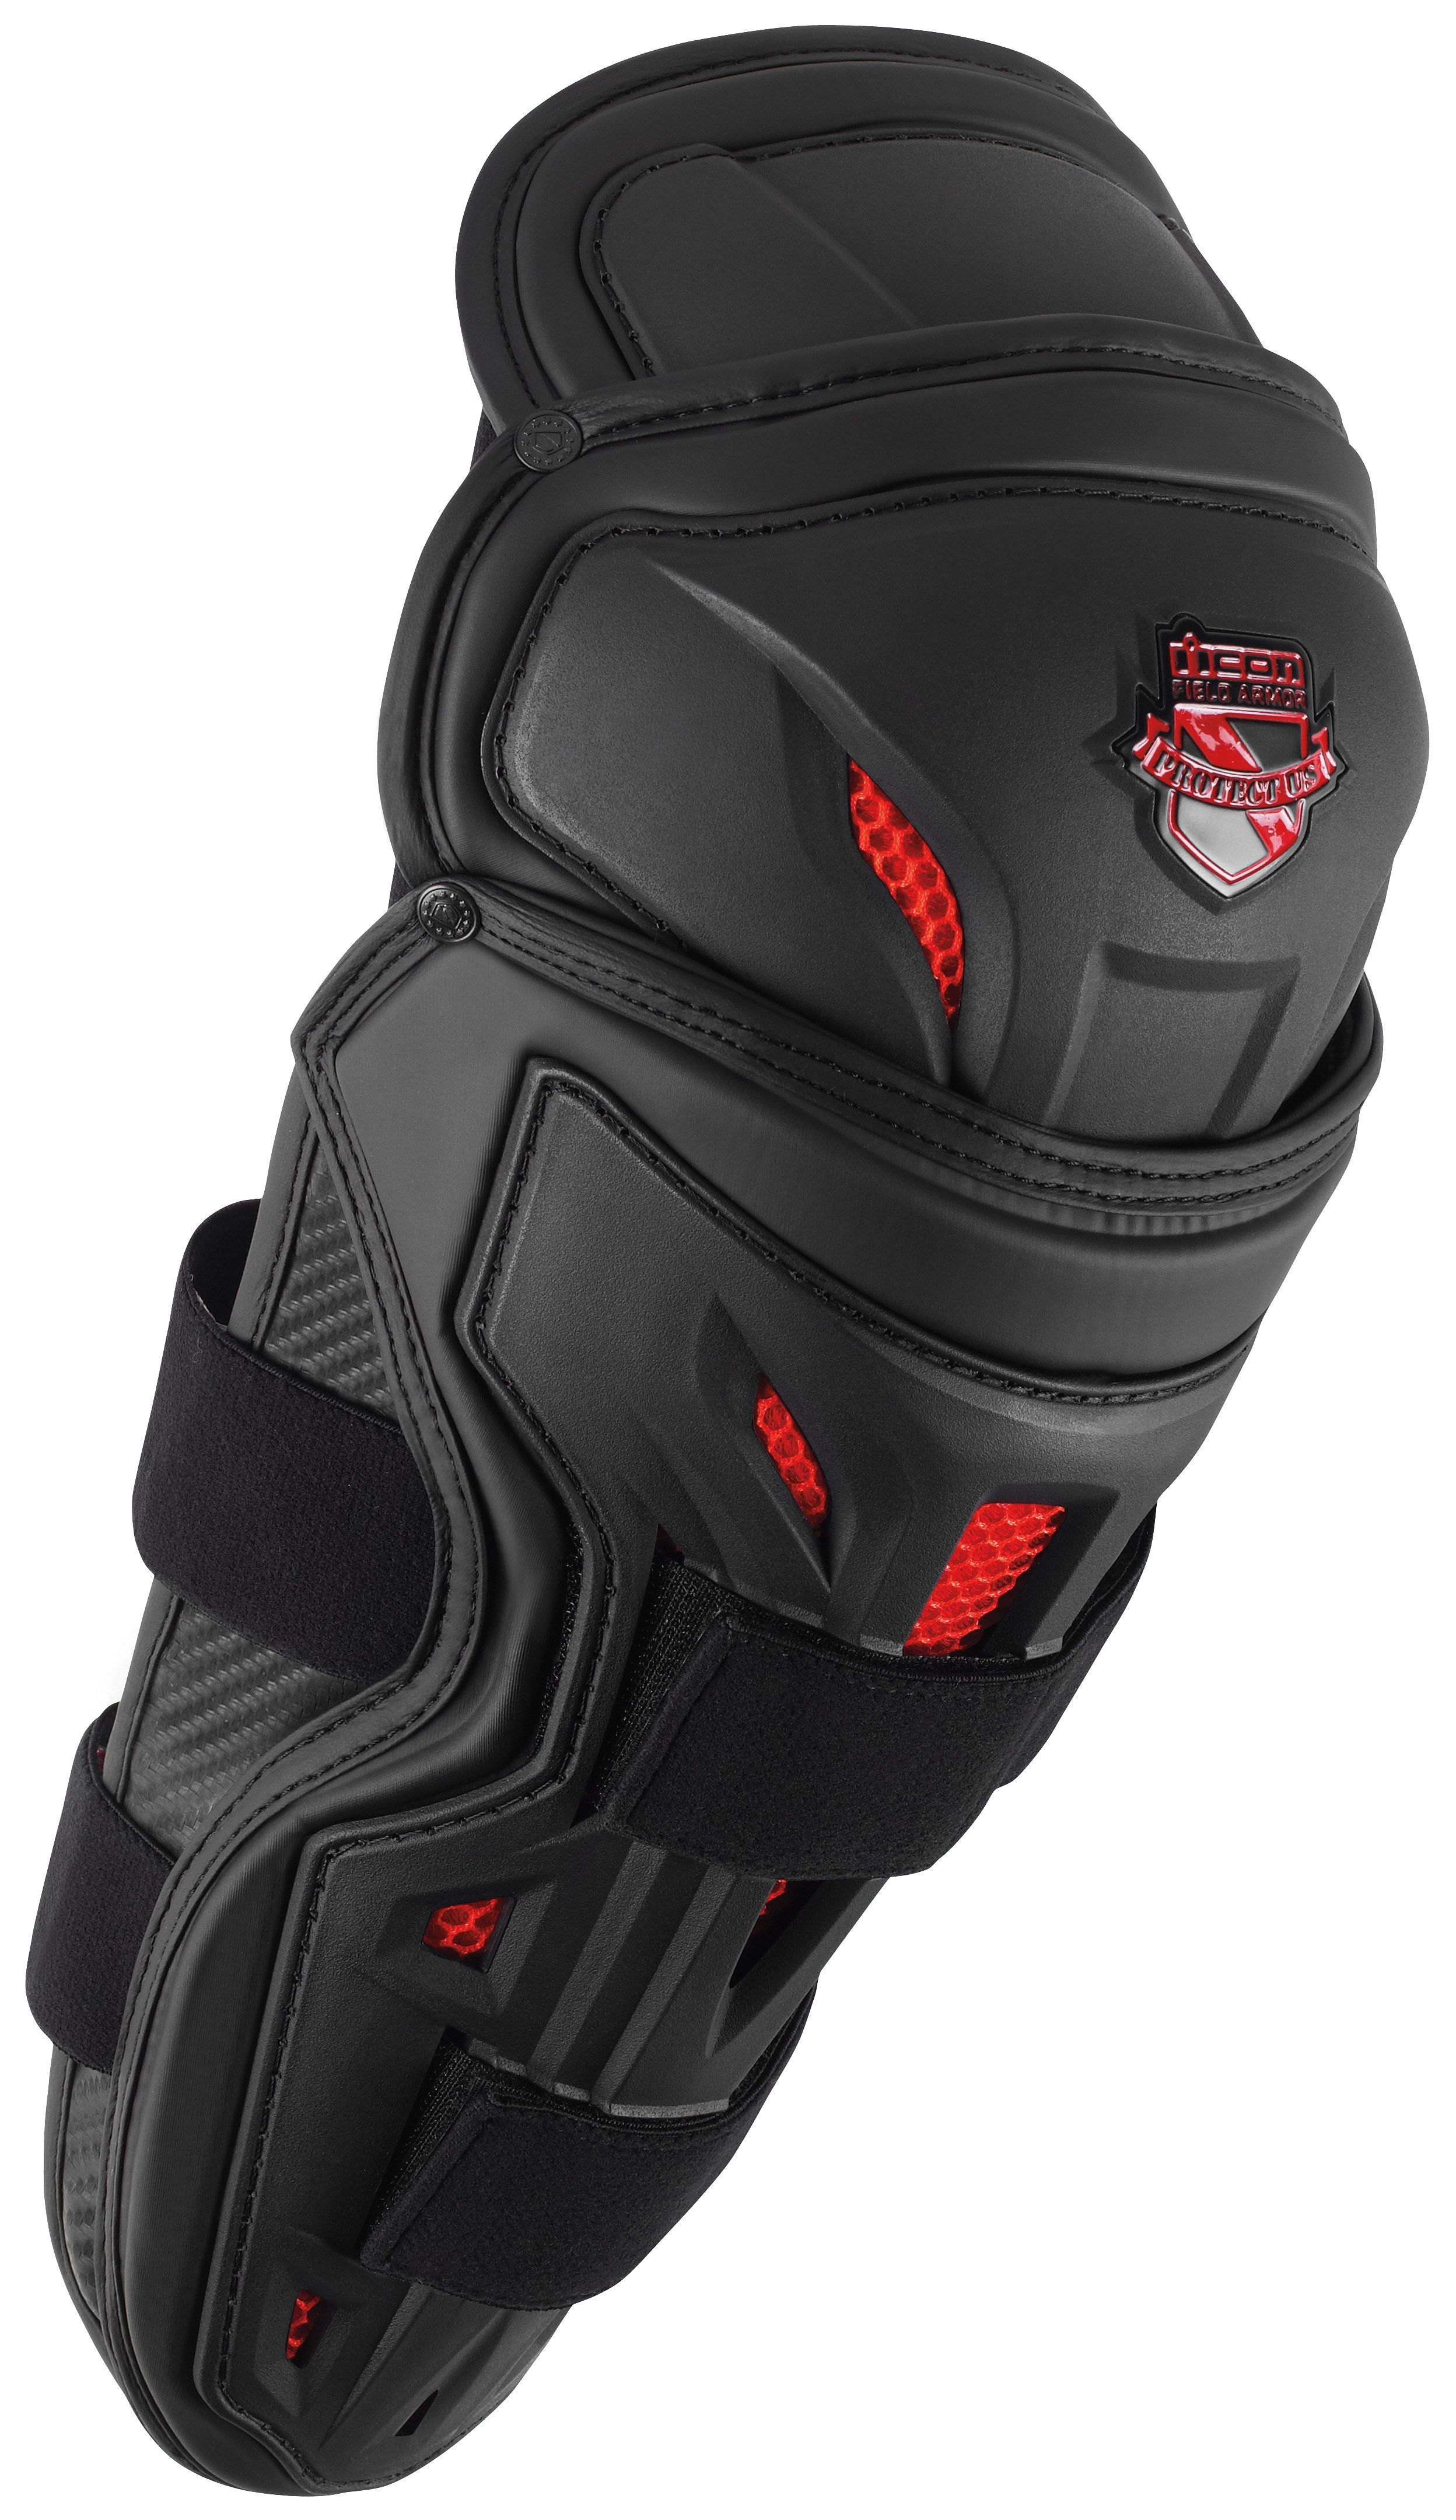 ICON Field Armor Stryker Motorcycle Knee//Shin Guards One Size Black